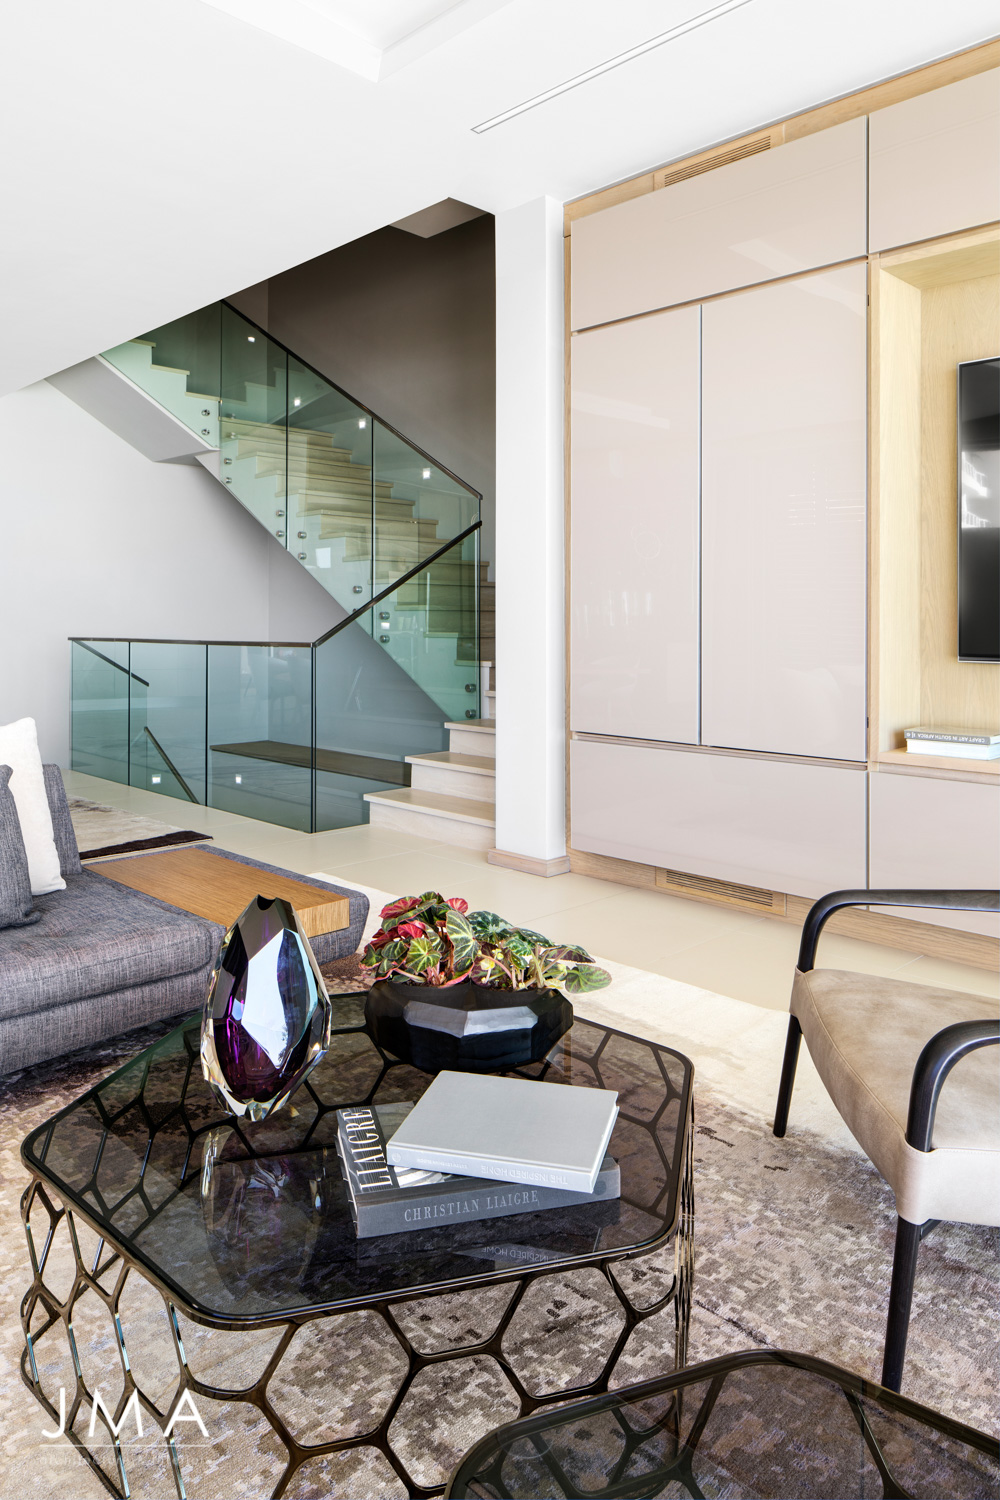 Stair and Living Area with Roche Bobois Furniture